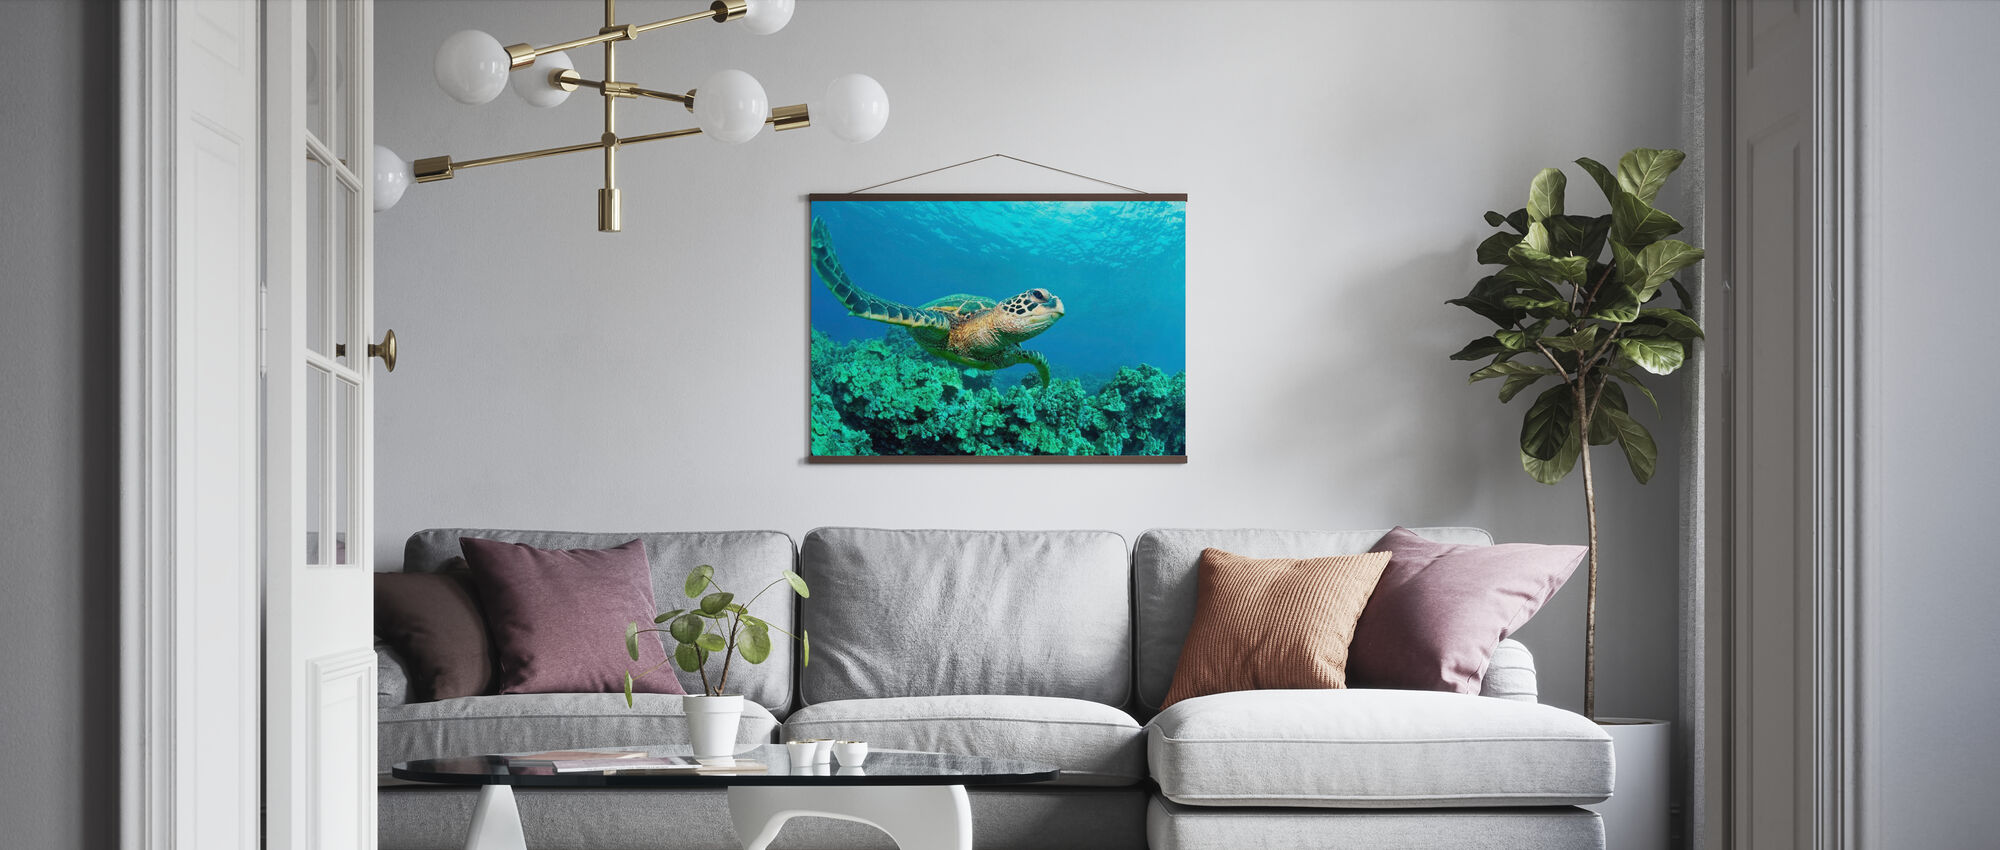 Sea Turtle in Coral - Poster - Living Room